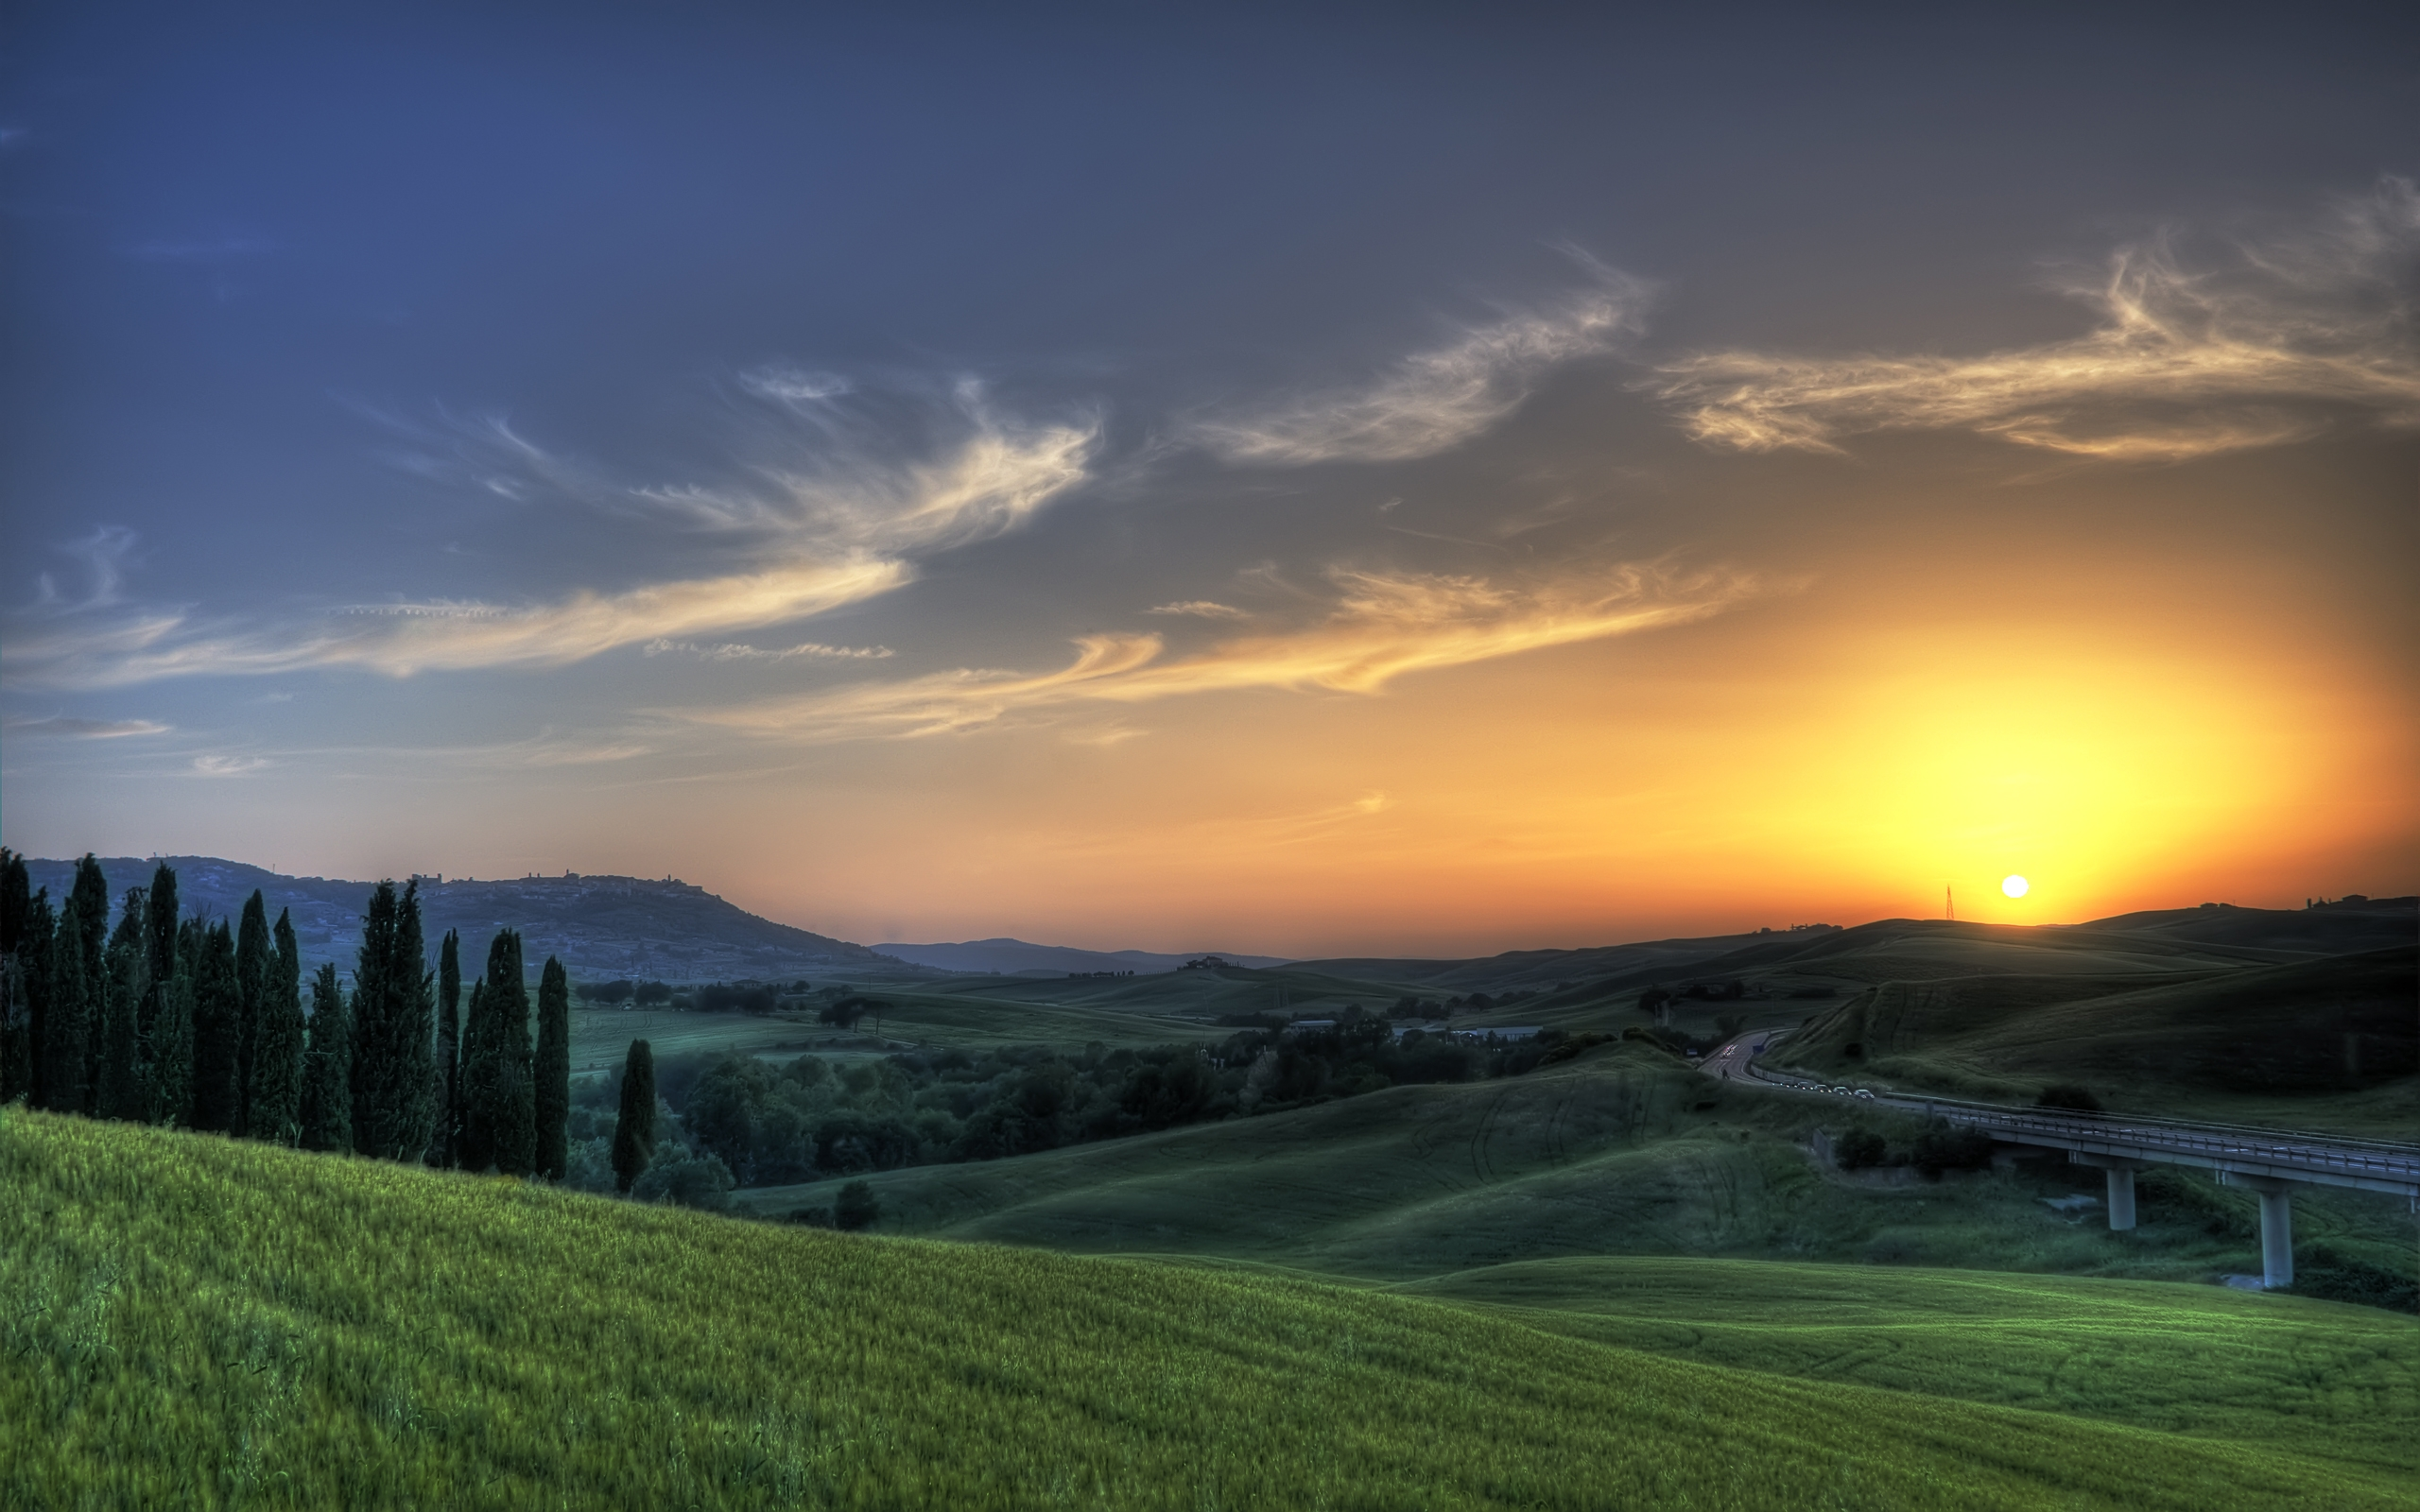 Tuscany Italy Sunset Wallpaper